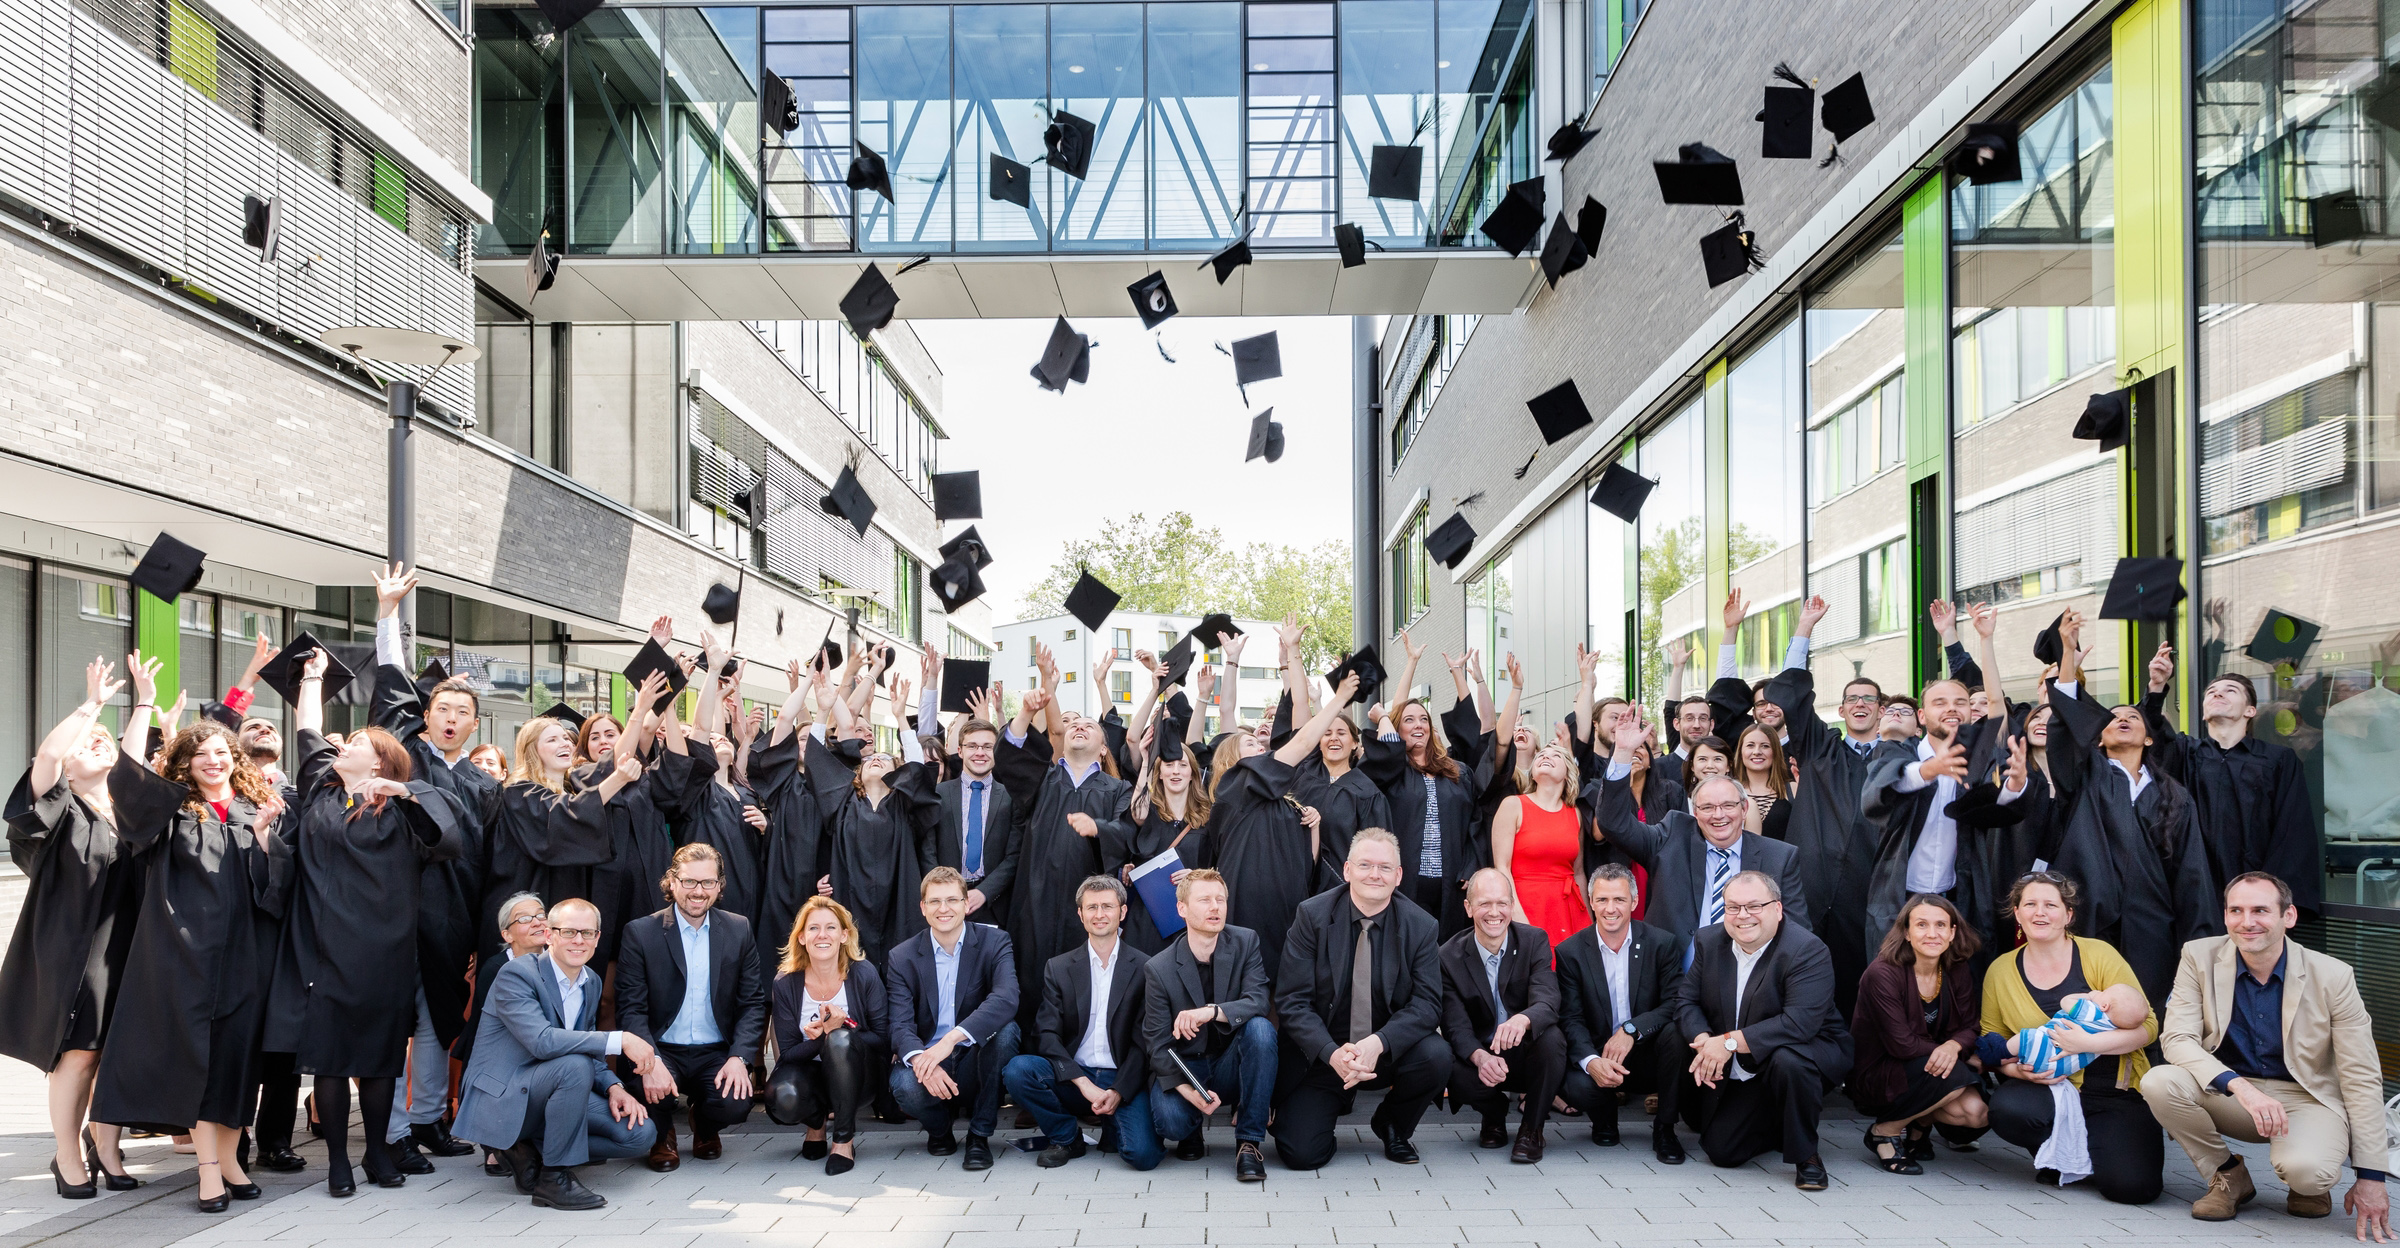 Graduation Ceremony Reception: Graduation Ceremony 2016 At Rhine-Waal University Of